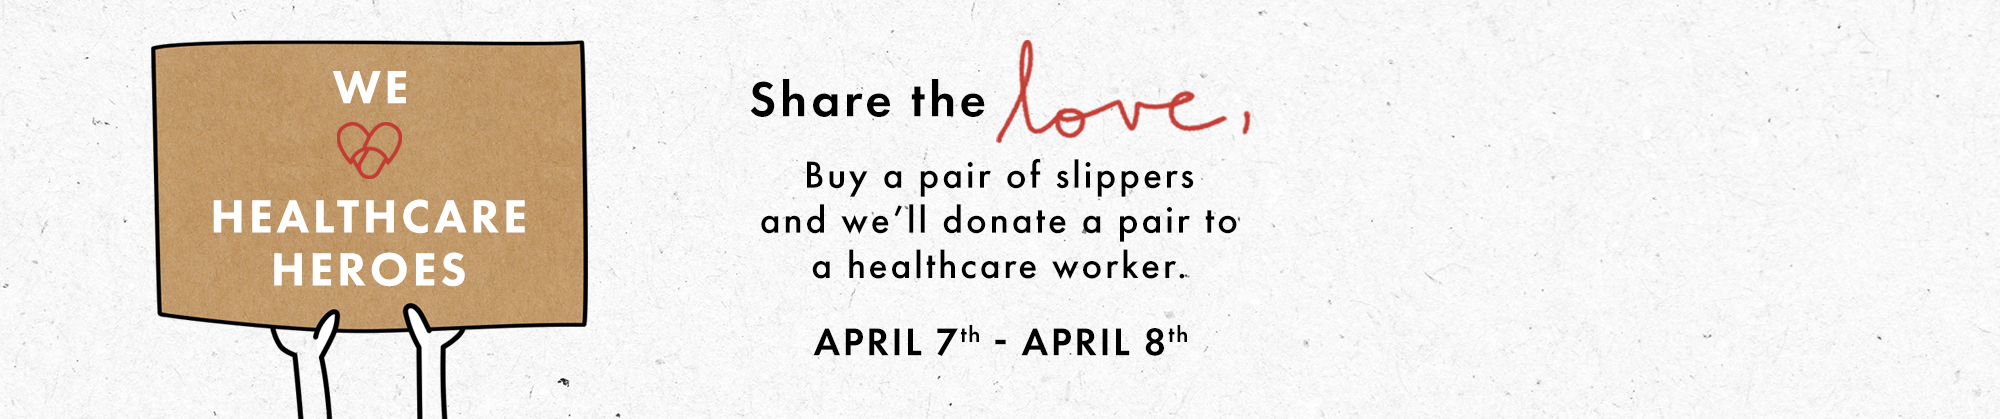 share the love, buy one give one